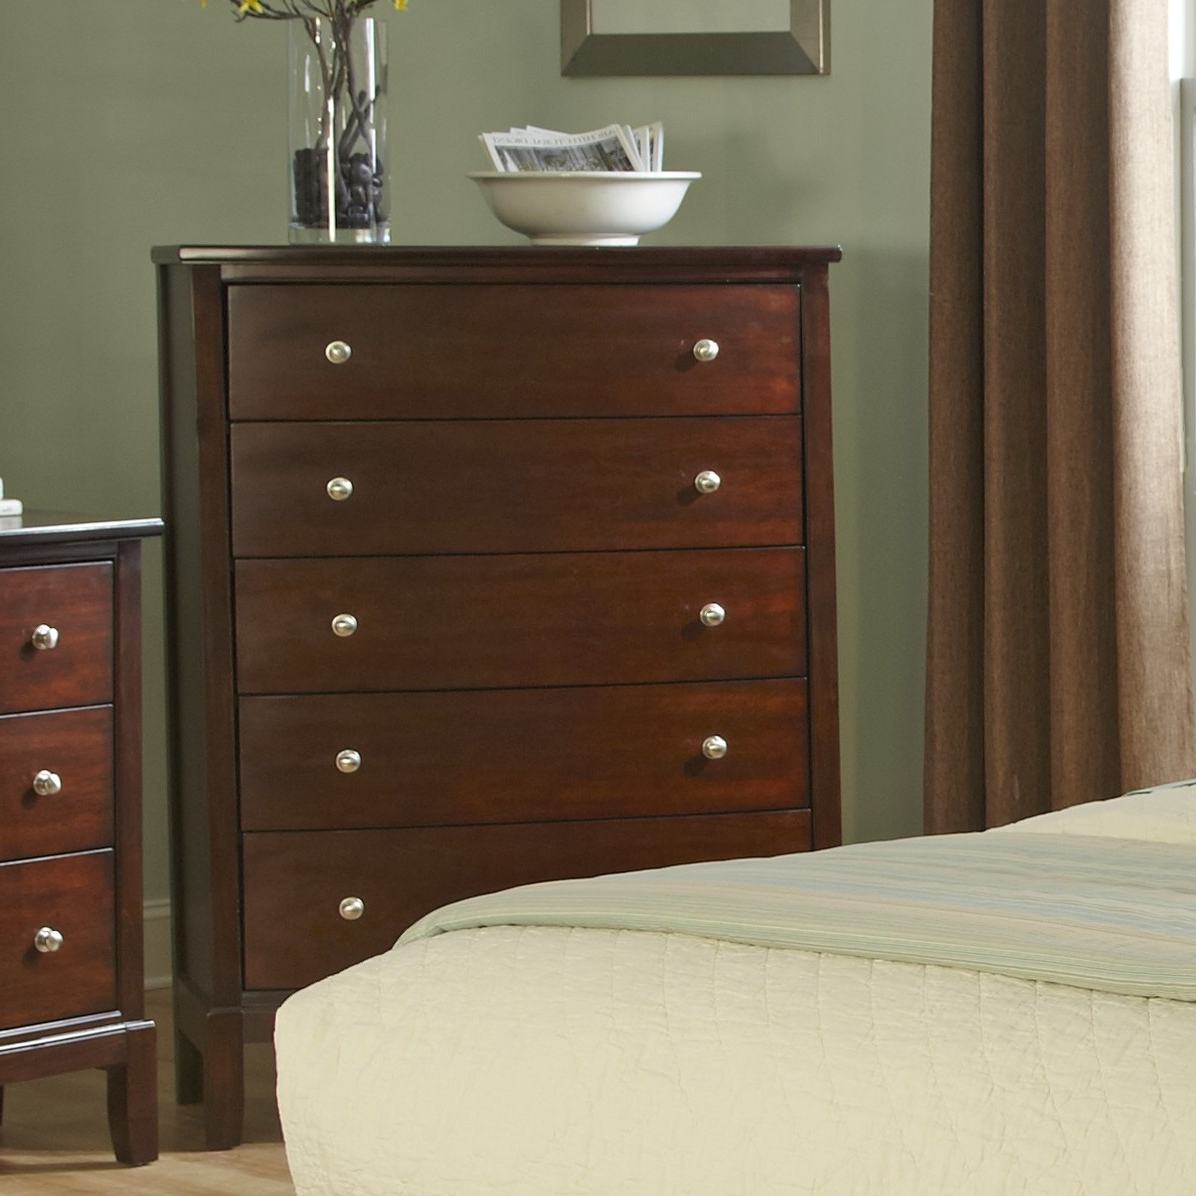 Popular Details About Wildon Home® Denver 5 Drawer Chest Throughout Sideboards By Wildon Home (Gallery 10 of 20)